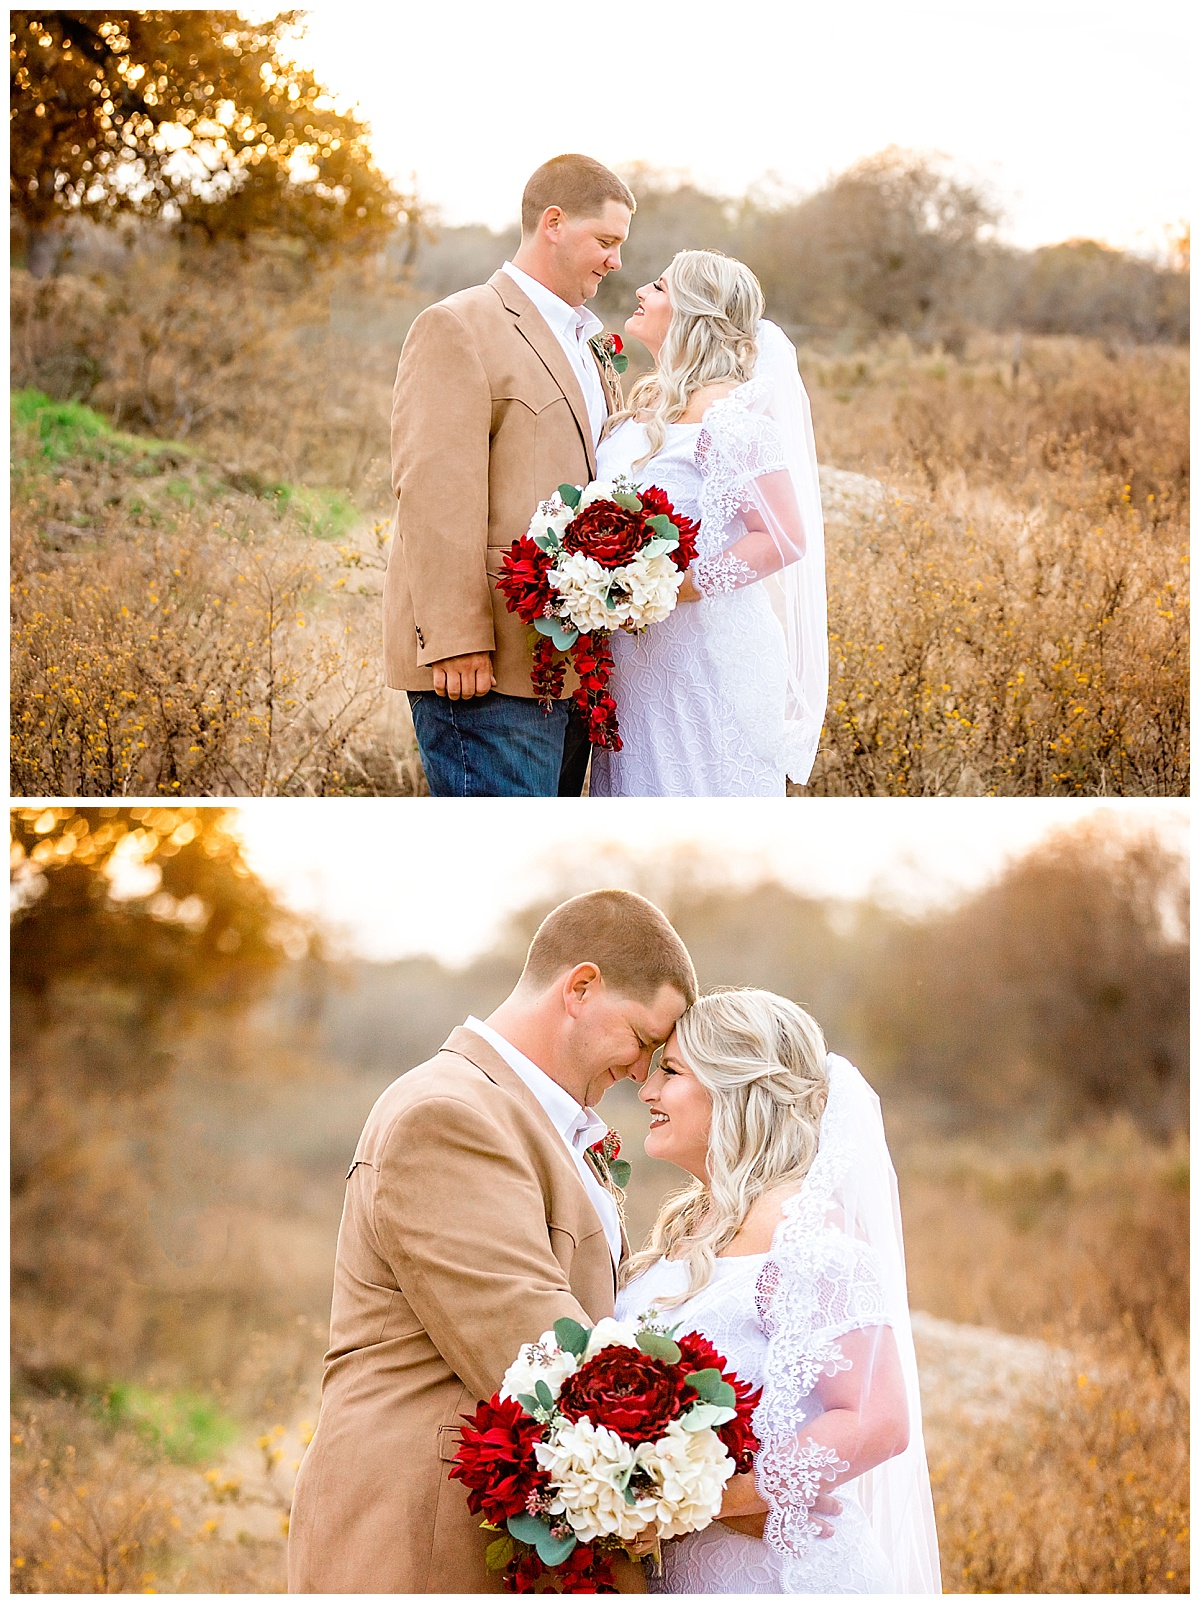 Wedding-Photographer-LaVernia-Texas-Ceremony-Under-the-Trees-Bride-Groom-Fall-McDonald-Carly-Barton-Photography_0017.jpg